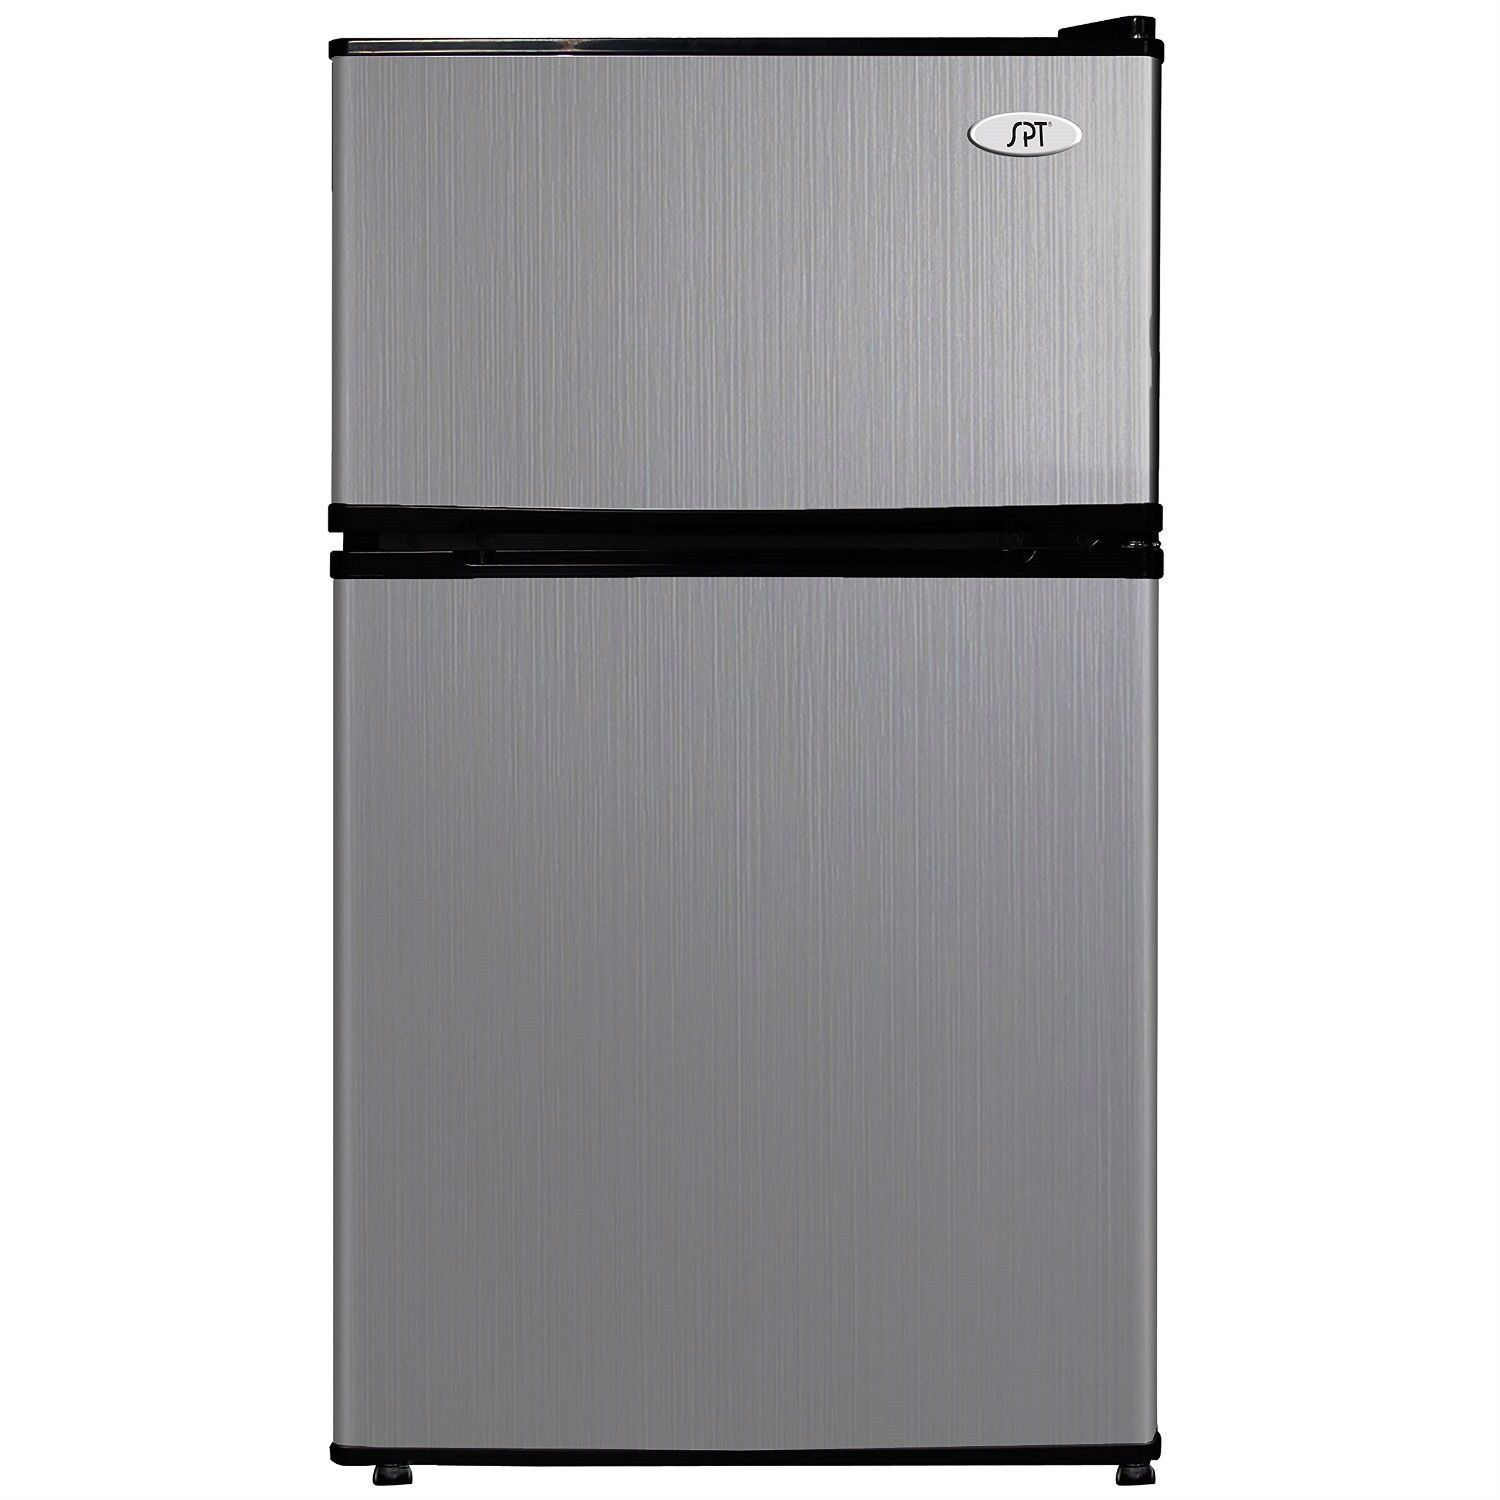 3 1 Cubic Foot Double Door Stainless Steel Refrigerator With